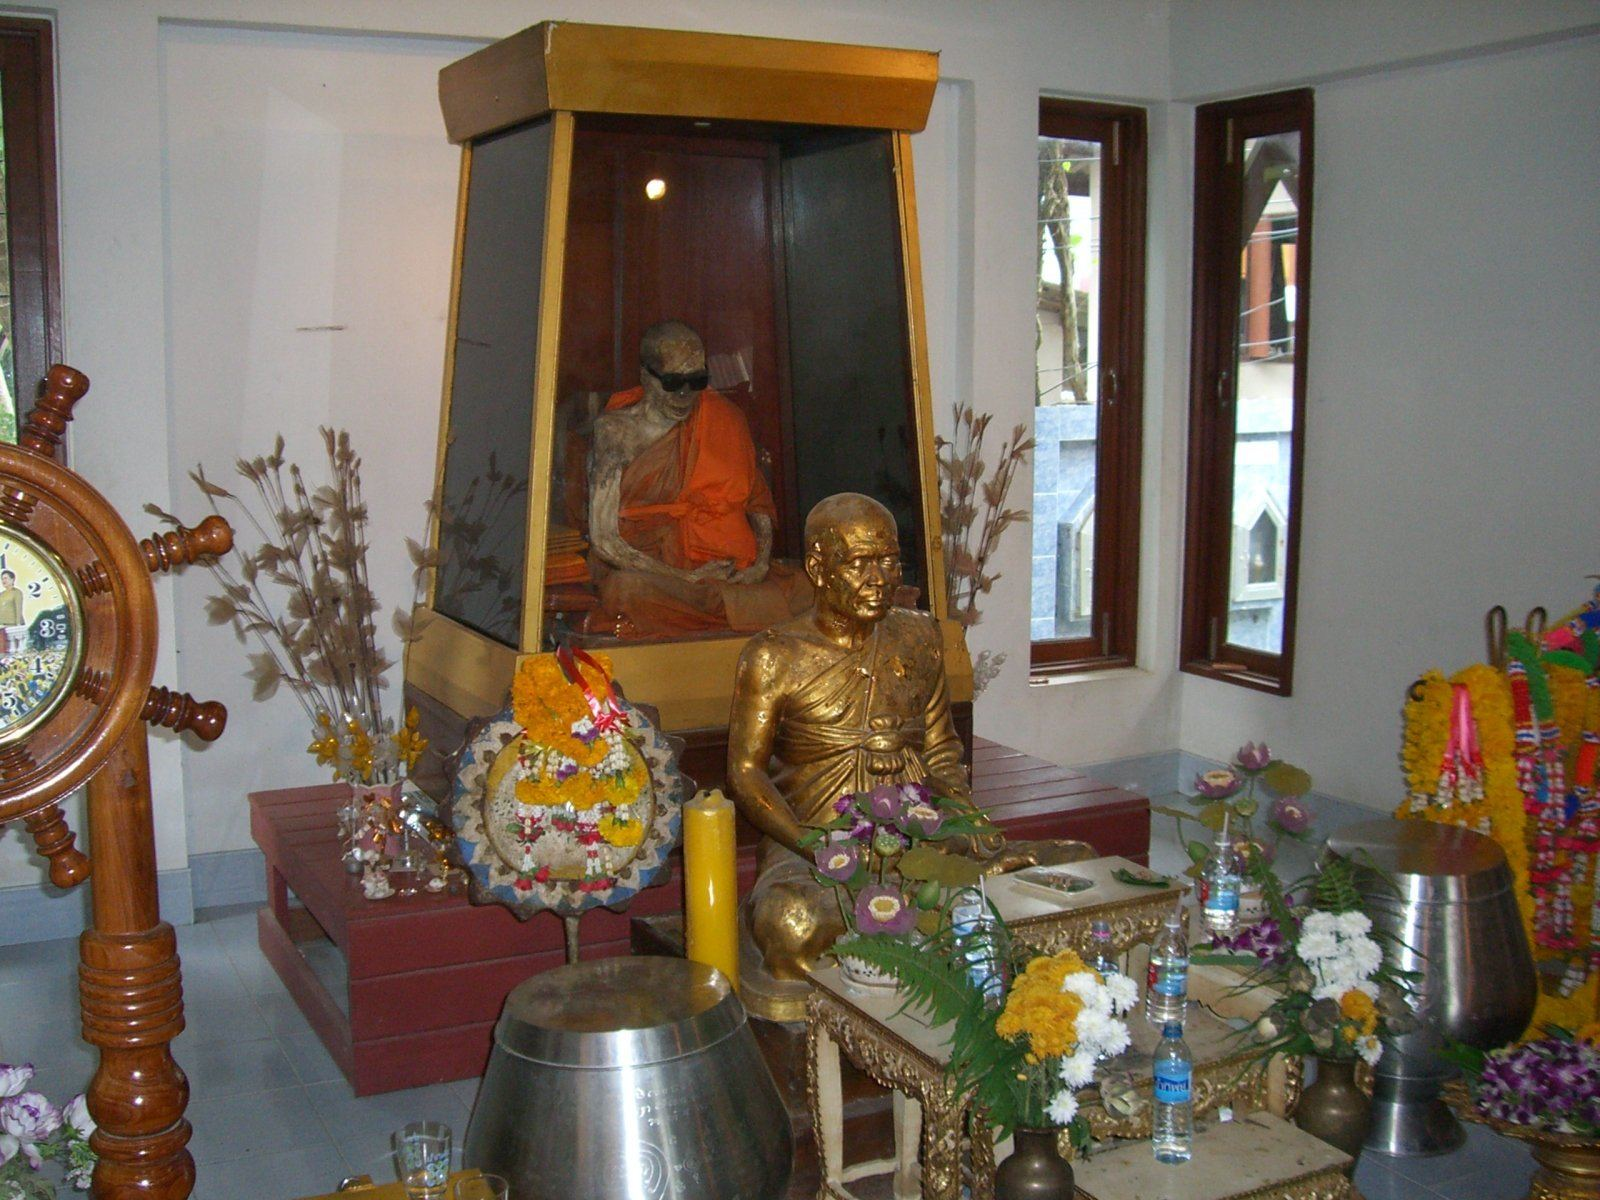 The Mummified Monk At Wat Khunaram